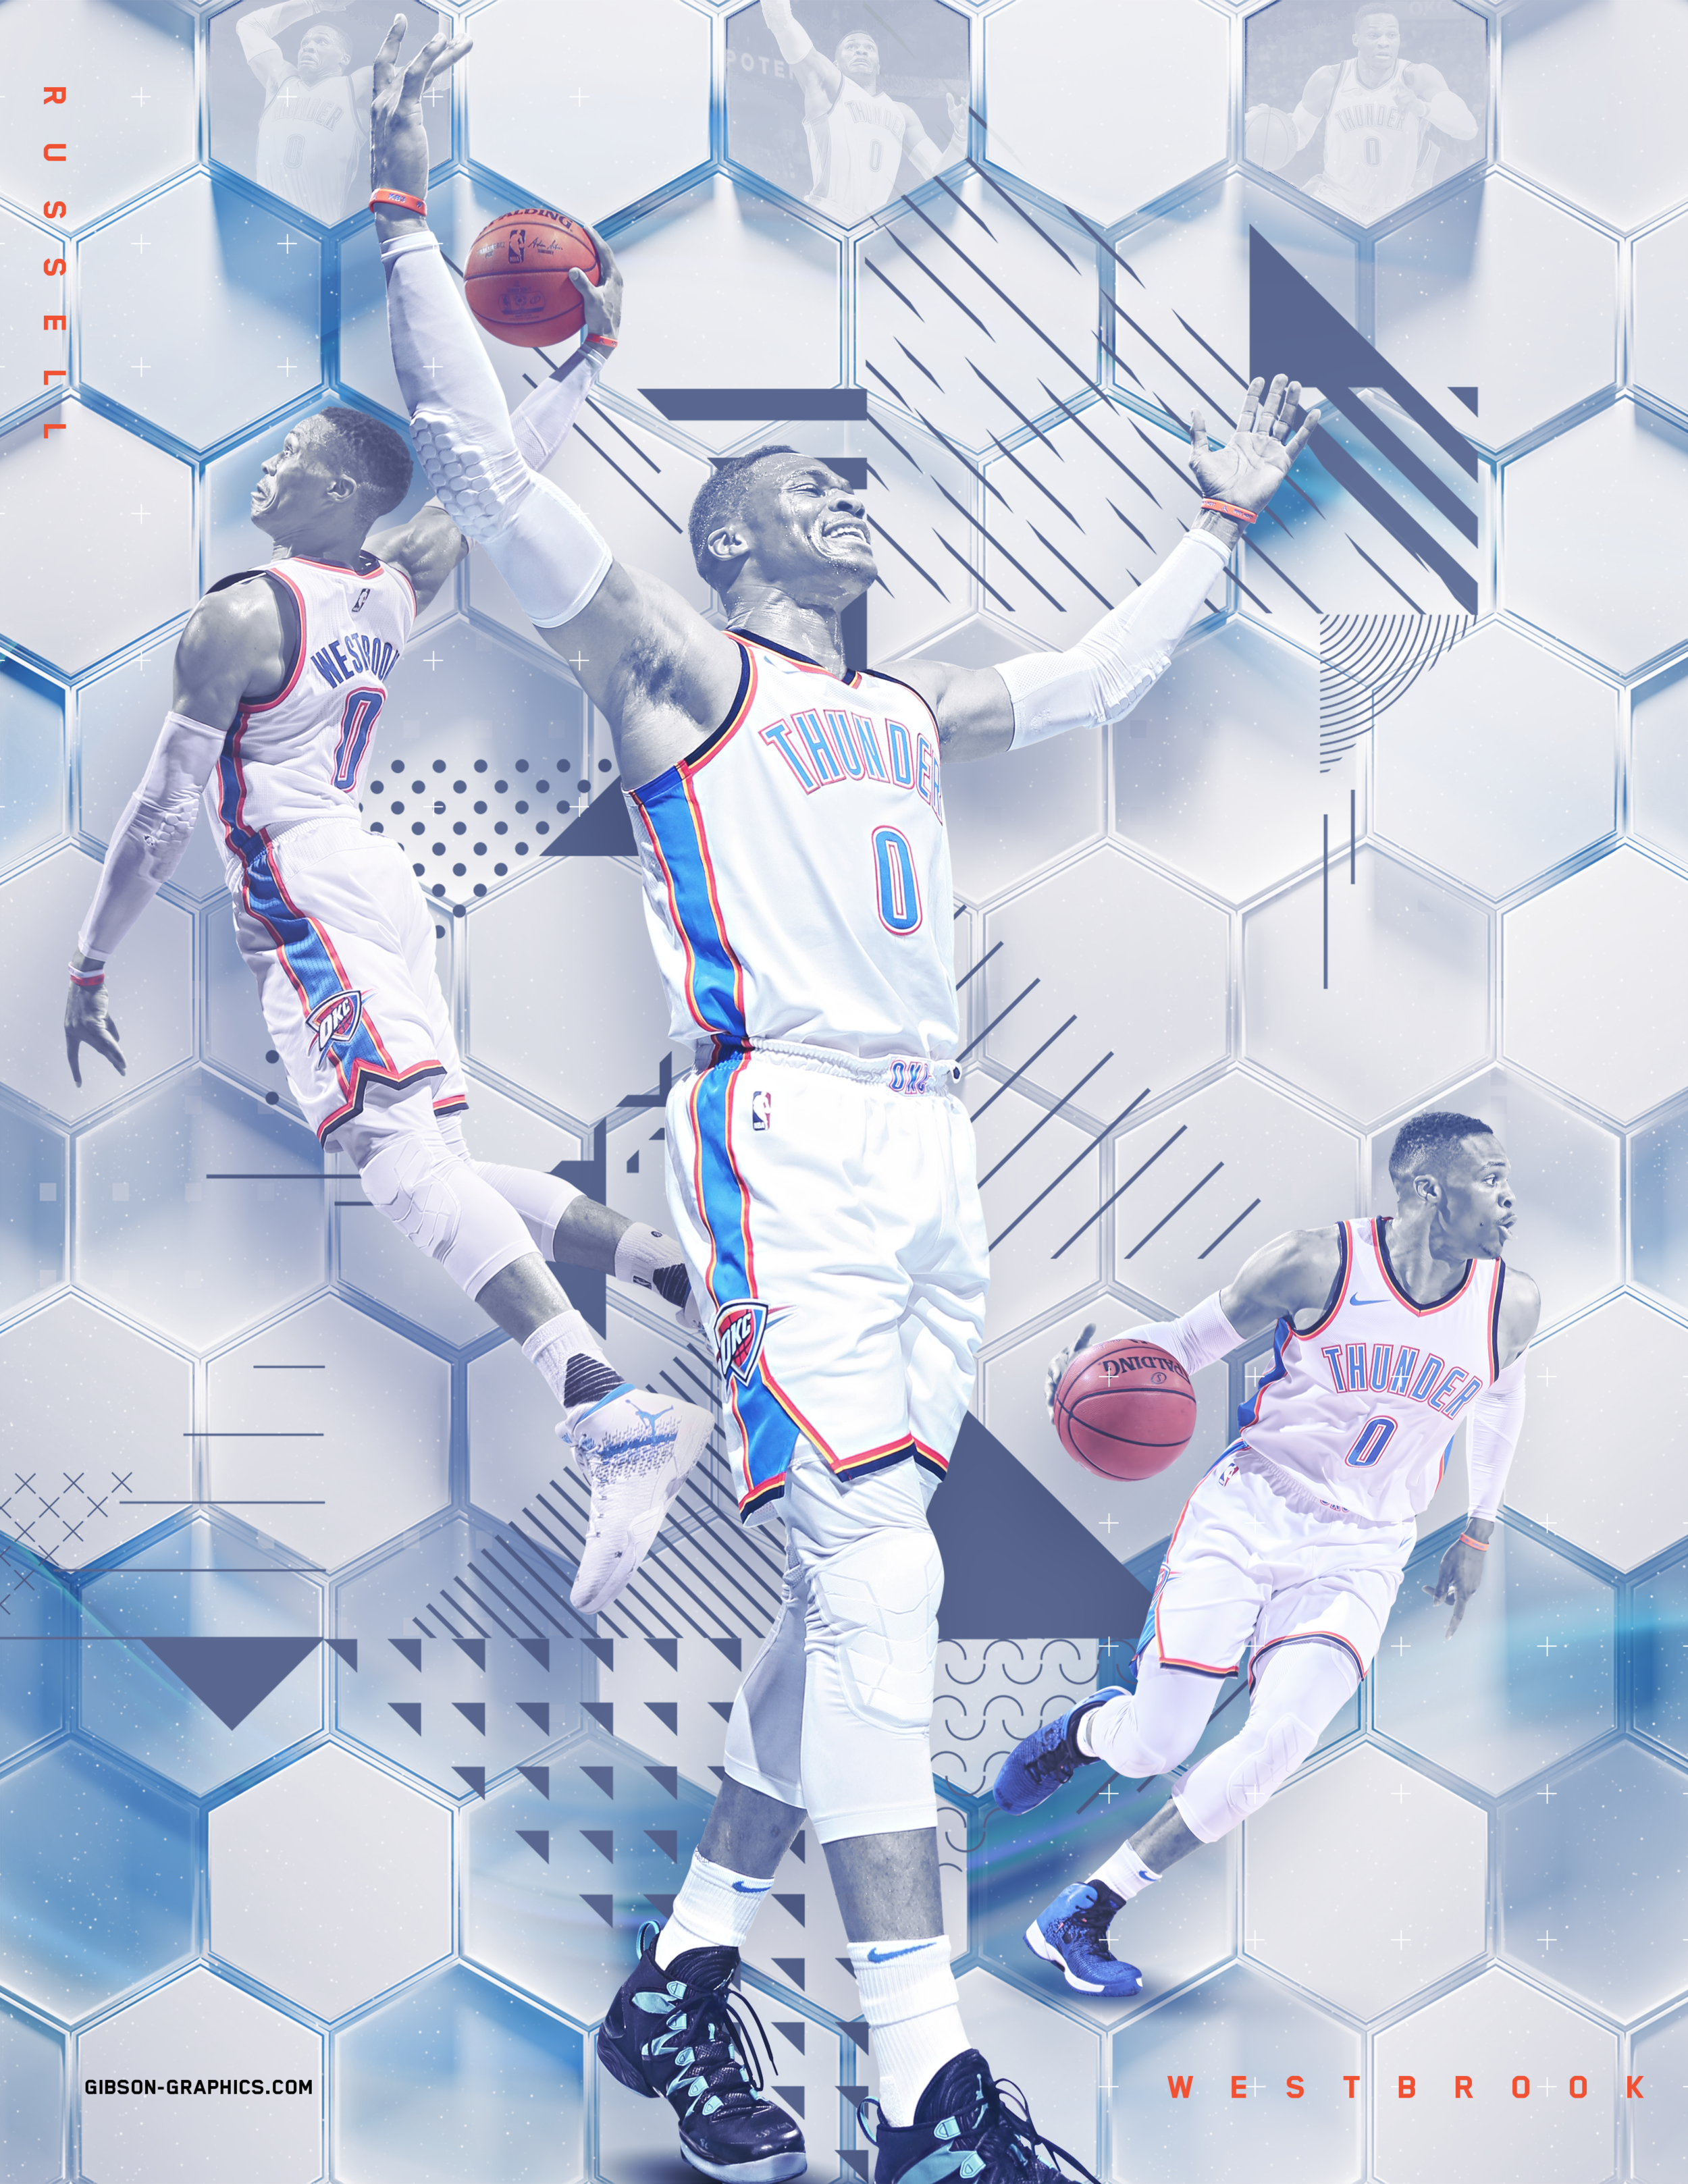 Russell Westbrook Abstract Hexagon Artwork